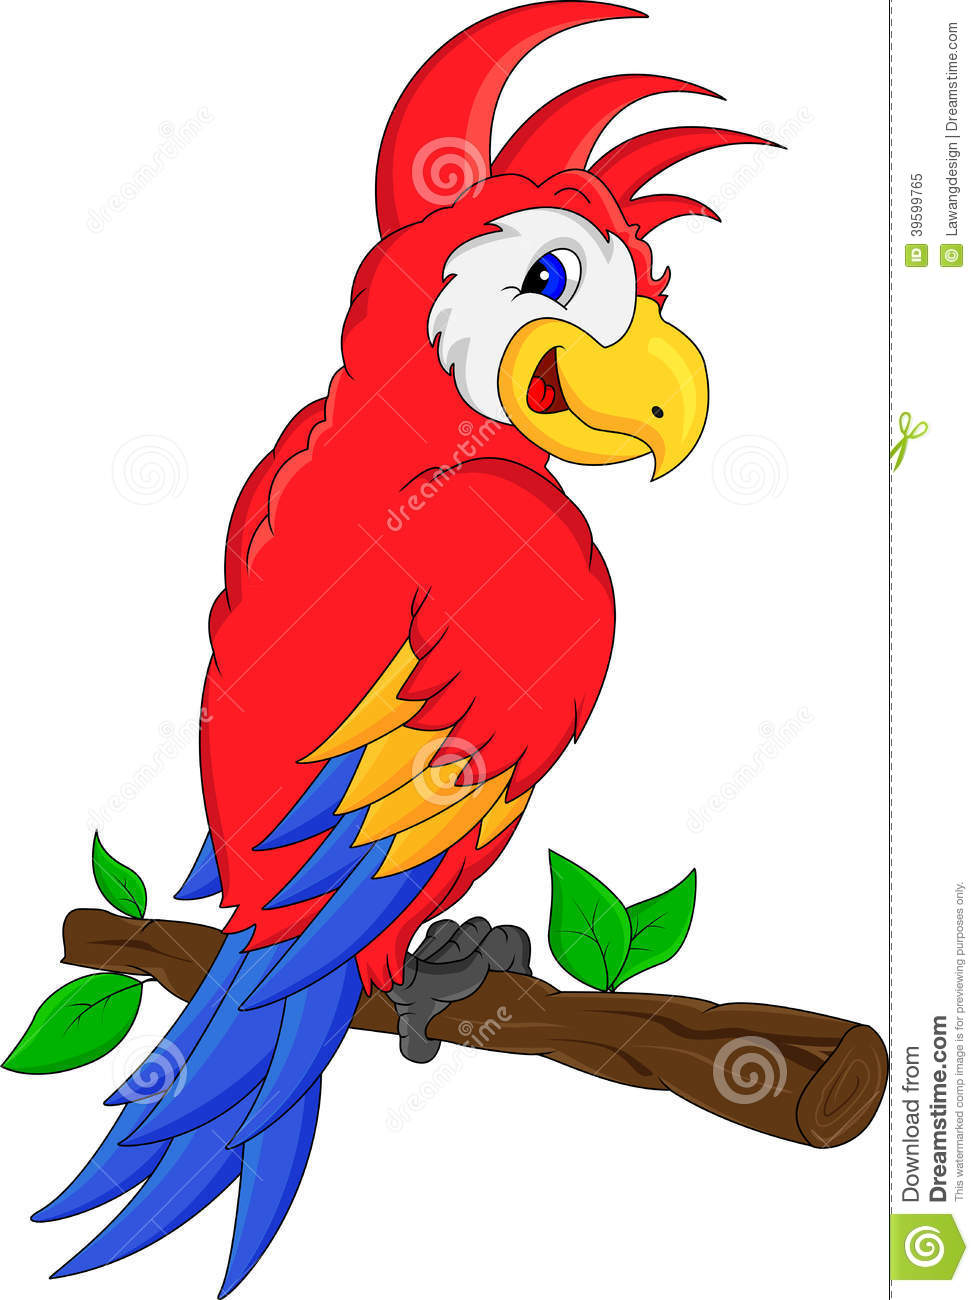 macaw bird cartoon stock vector illustration of drawing 39599765 rh dreamstime com scarlet macaw clipart macaw bird clipart